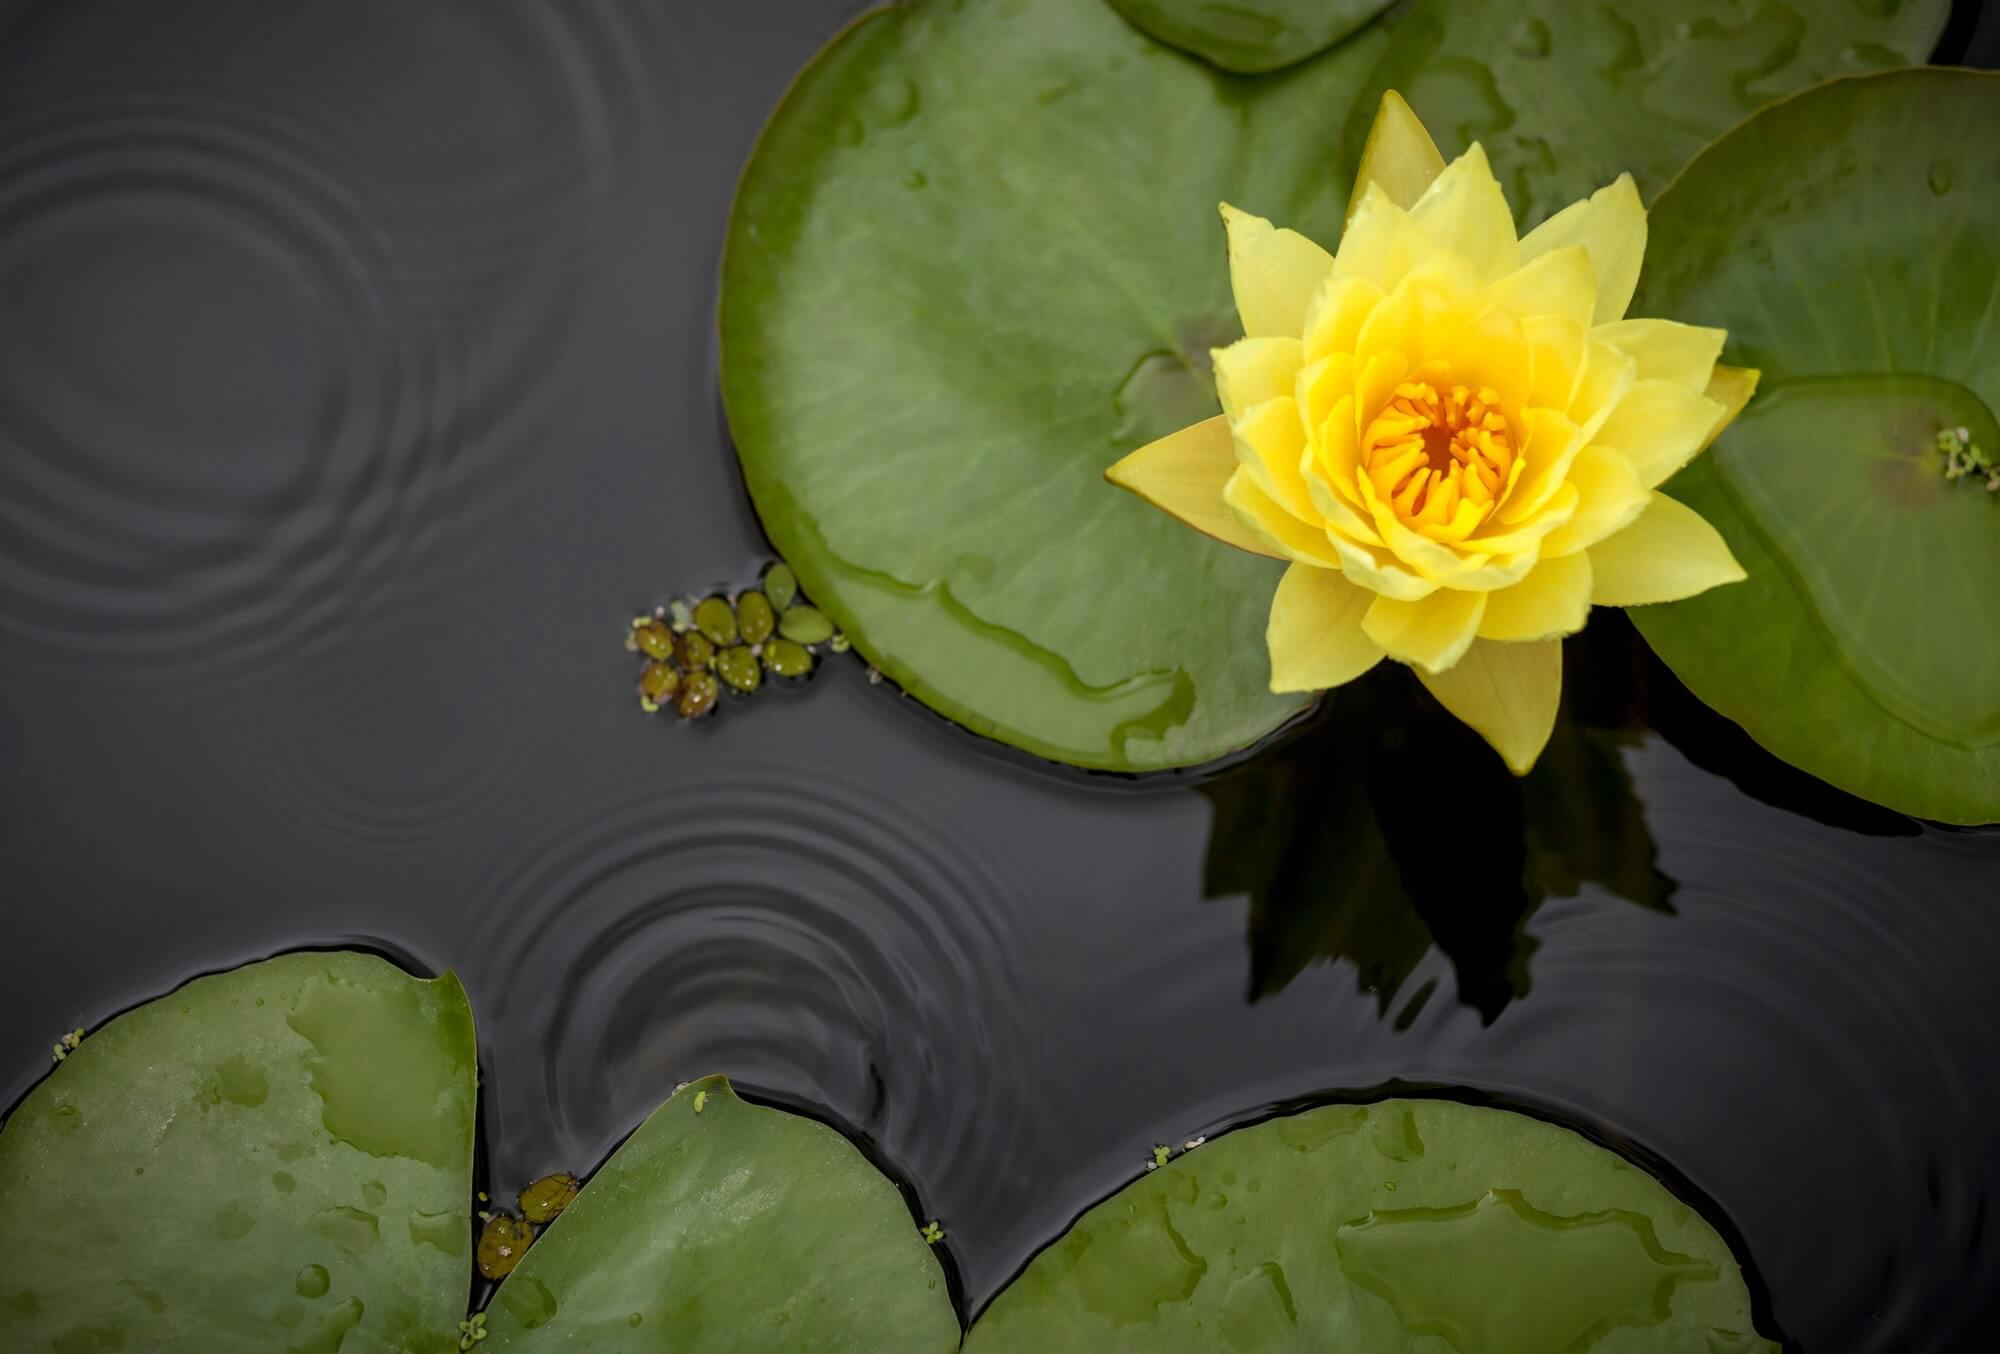 Yellow waterlily in the pond in the rain